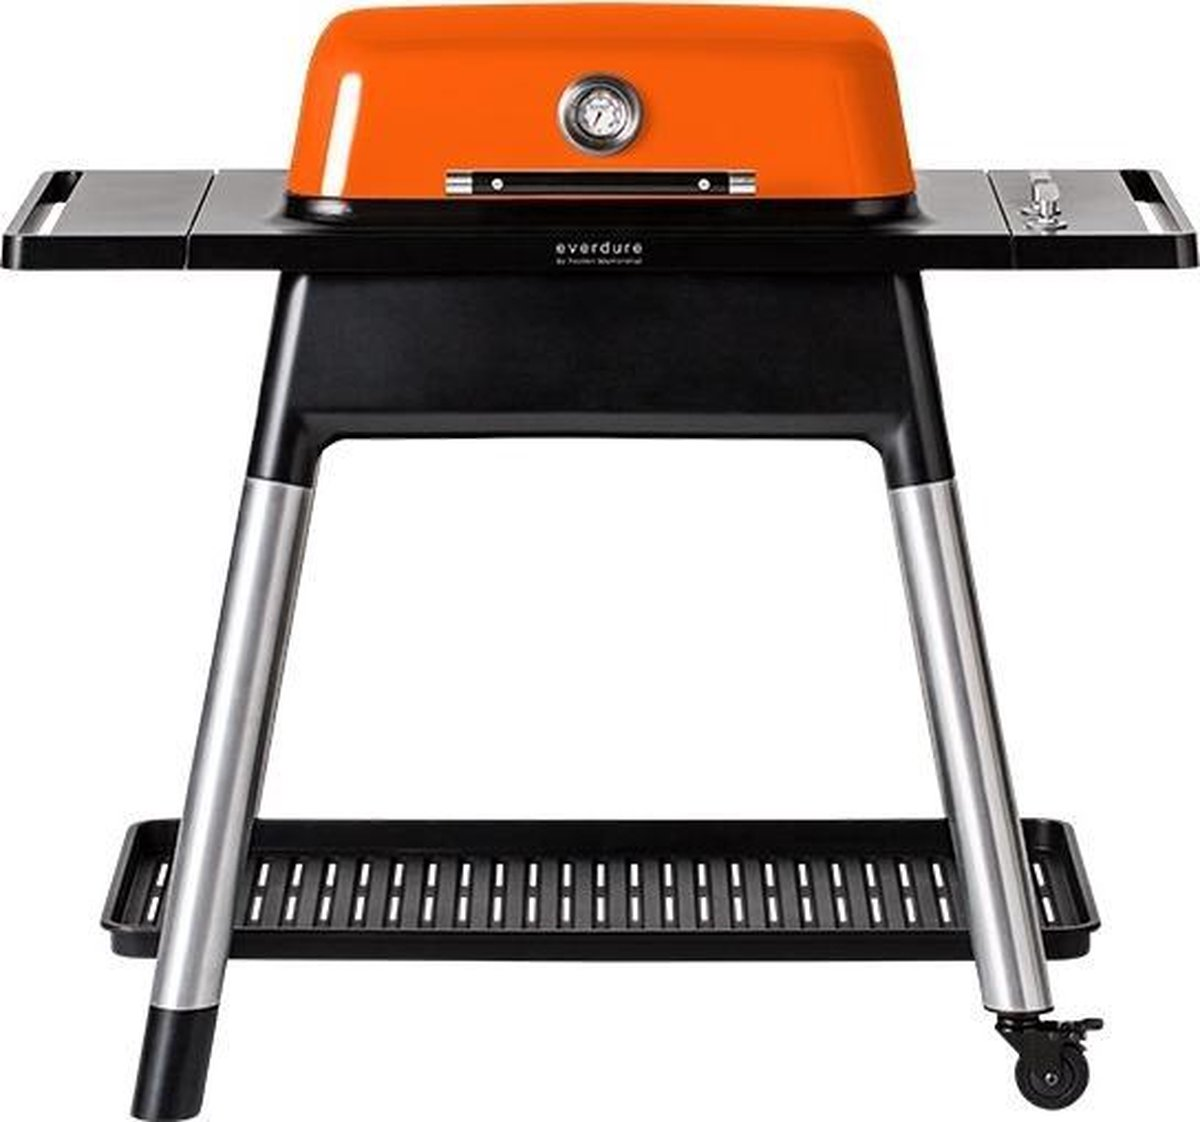 Gasbarbecue Force - 30 mbar NL - Oranje - Everdure